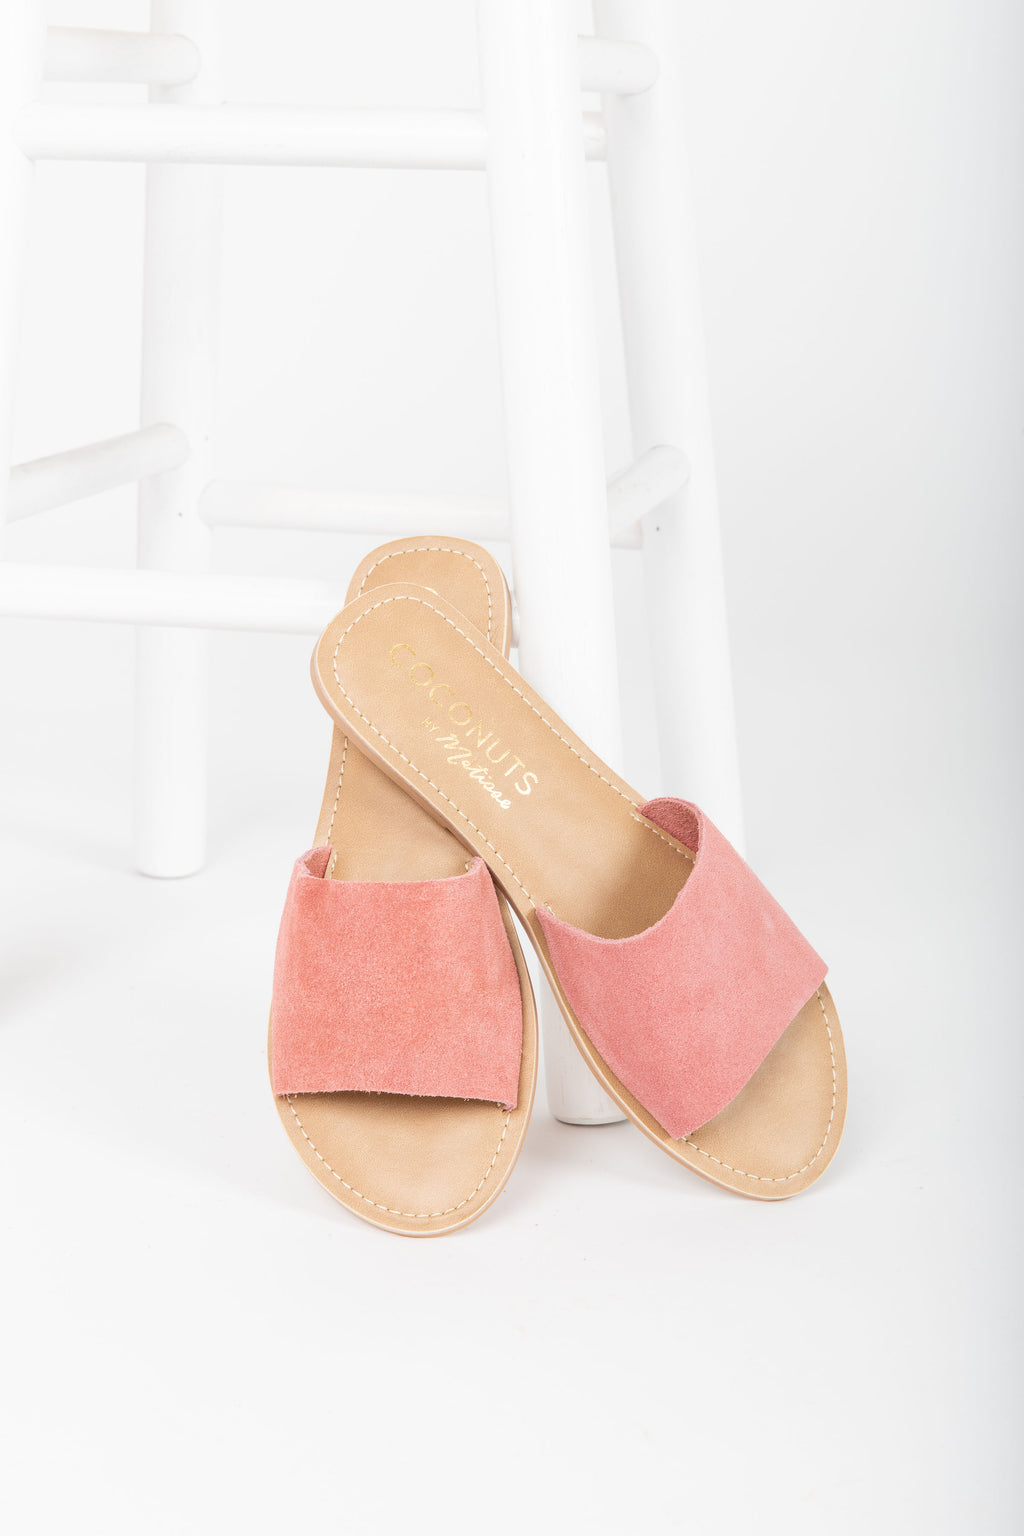 Coconuts by Matisse: Cabana Suede Slide Sandal in Blush Pink